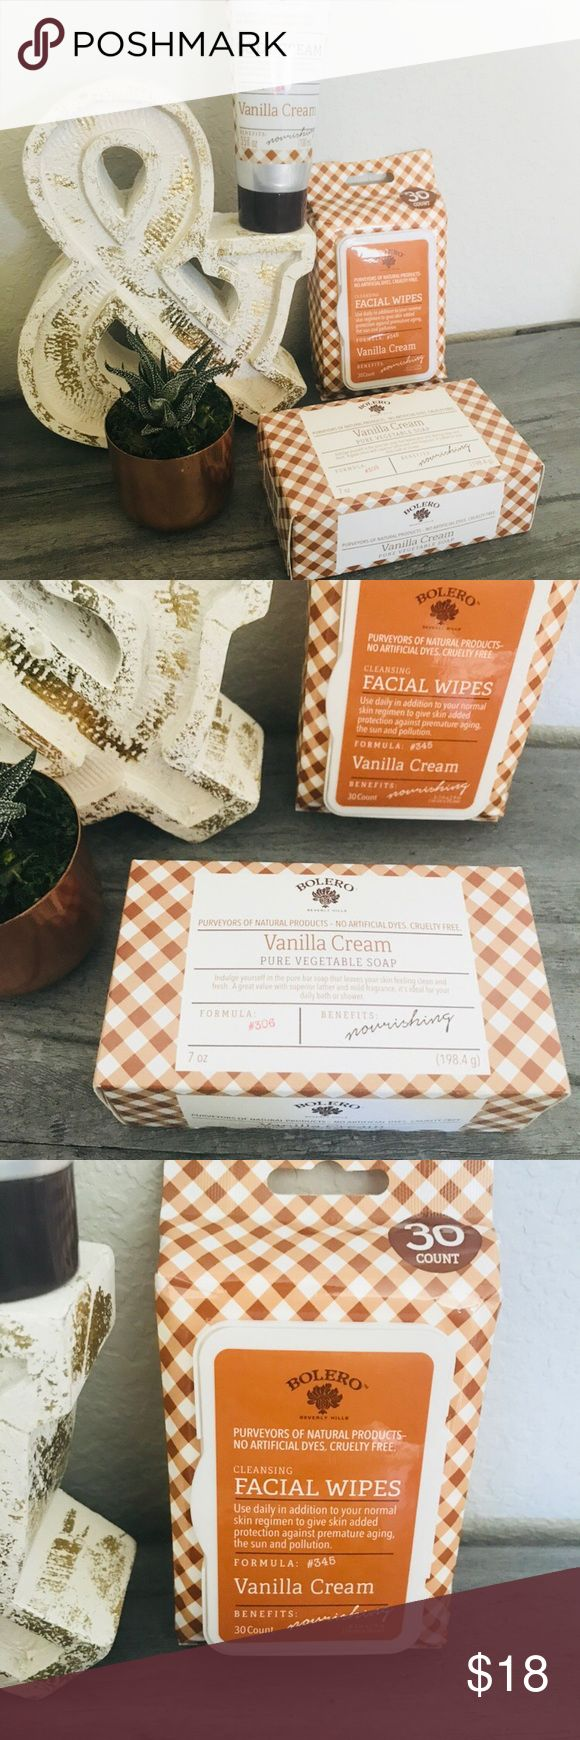 Vanilla Cream Body Set! Vanilla Cream Body Set! Brand new, was given as a gift but I don't need it! Makeup removing cleansing wipes, a bar of soap, and lotion. All cruelty free and made in the USA! Bolero Makeup